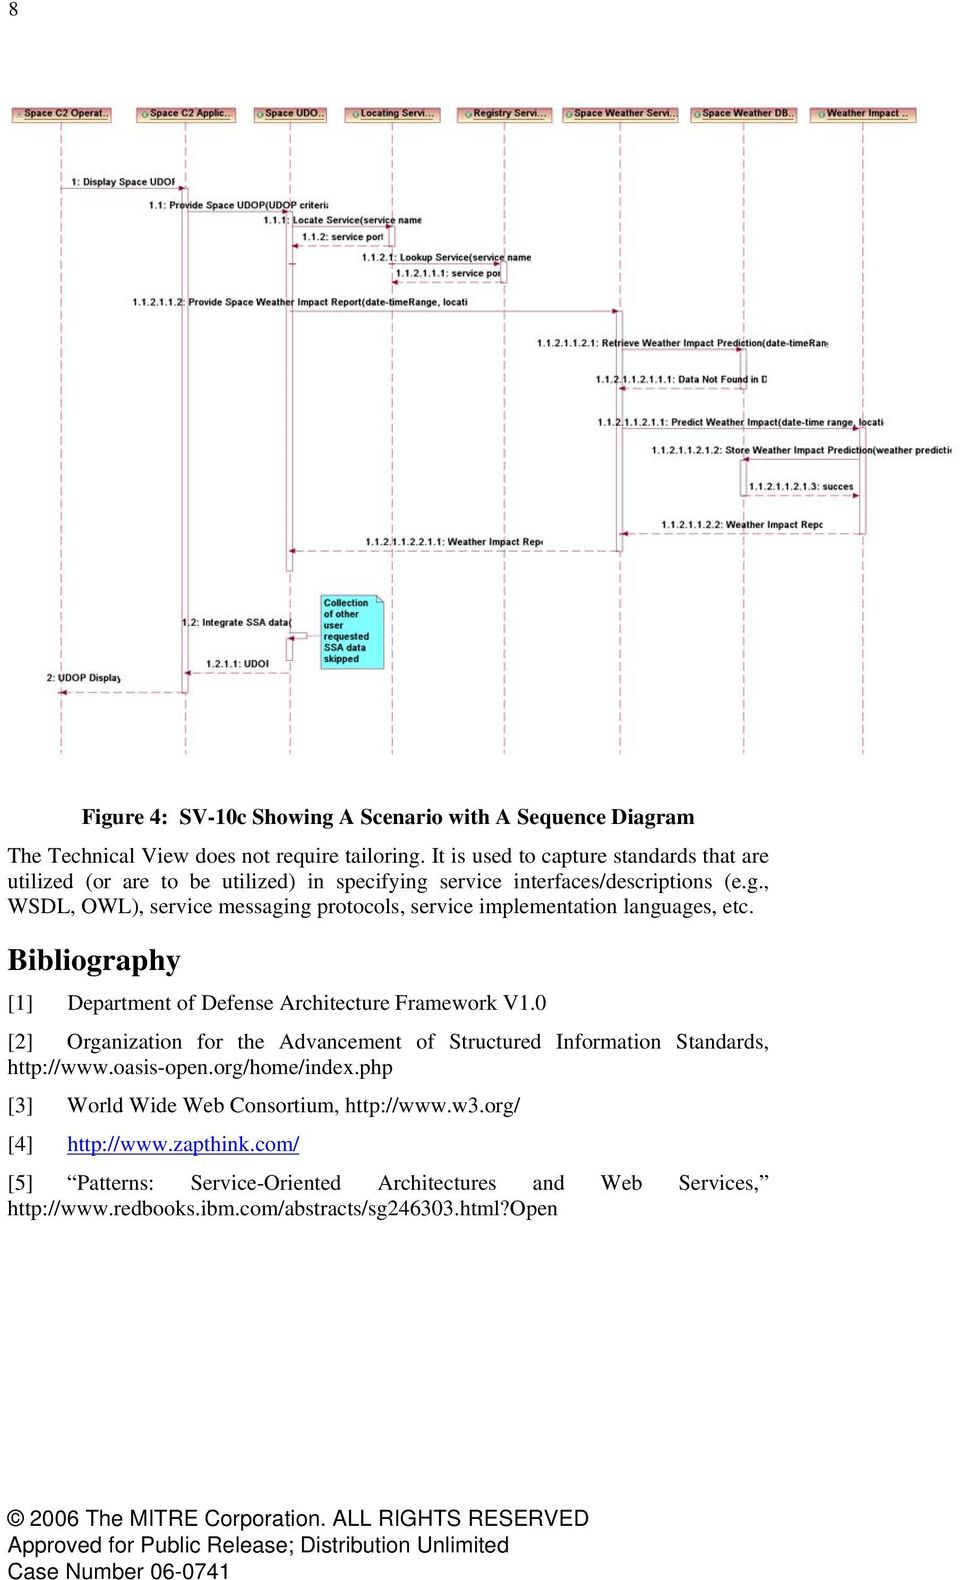 Bibliography [1] Department of Defense Architecture Framework V1.0 [2] Organization for the Advancement of Structured Information Standards, http://www.oasis-open.